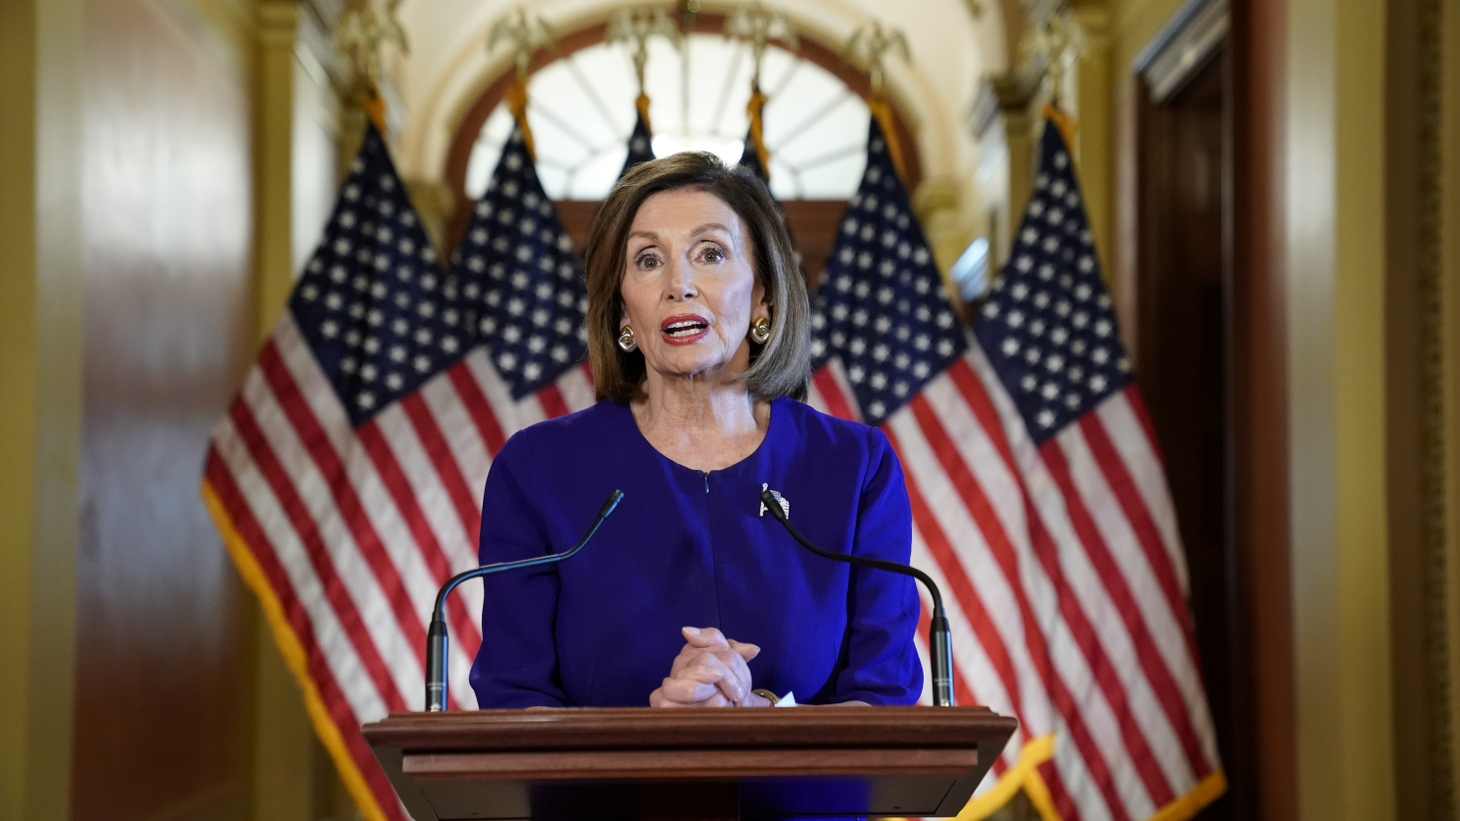 House Speaker Nancy Pelosi (D-CA) announces the House of Representatives will launch a formal inquiry into the impeachment of U.S. President Donald Trump following a closed House Democratic caucus meeting at the U.S. Capitol in Washington, U.S., September 24, 2019.